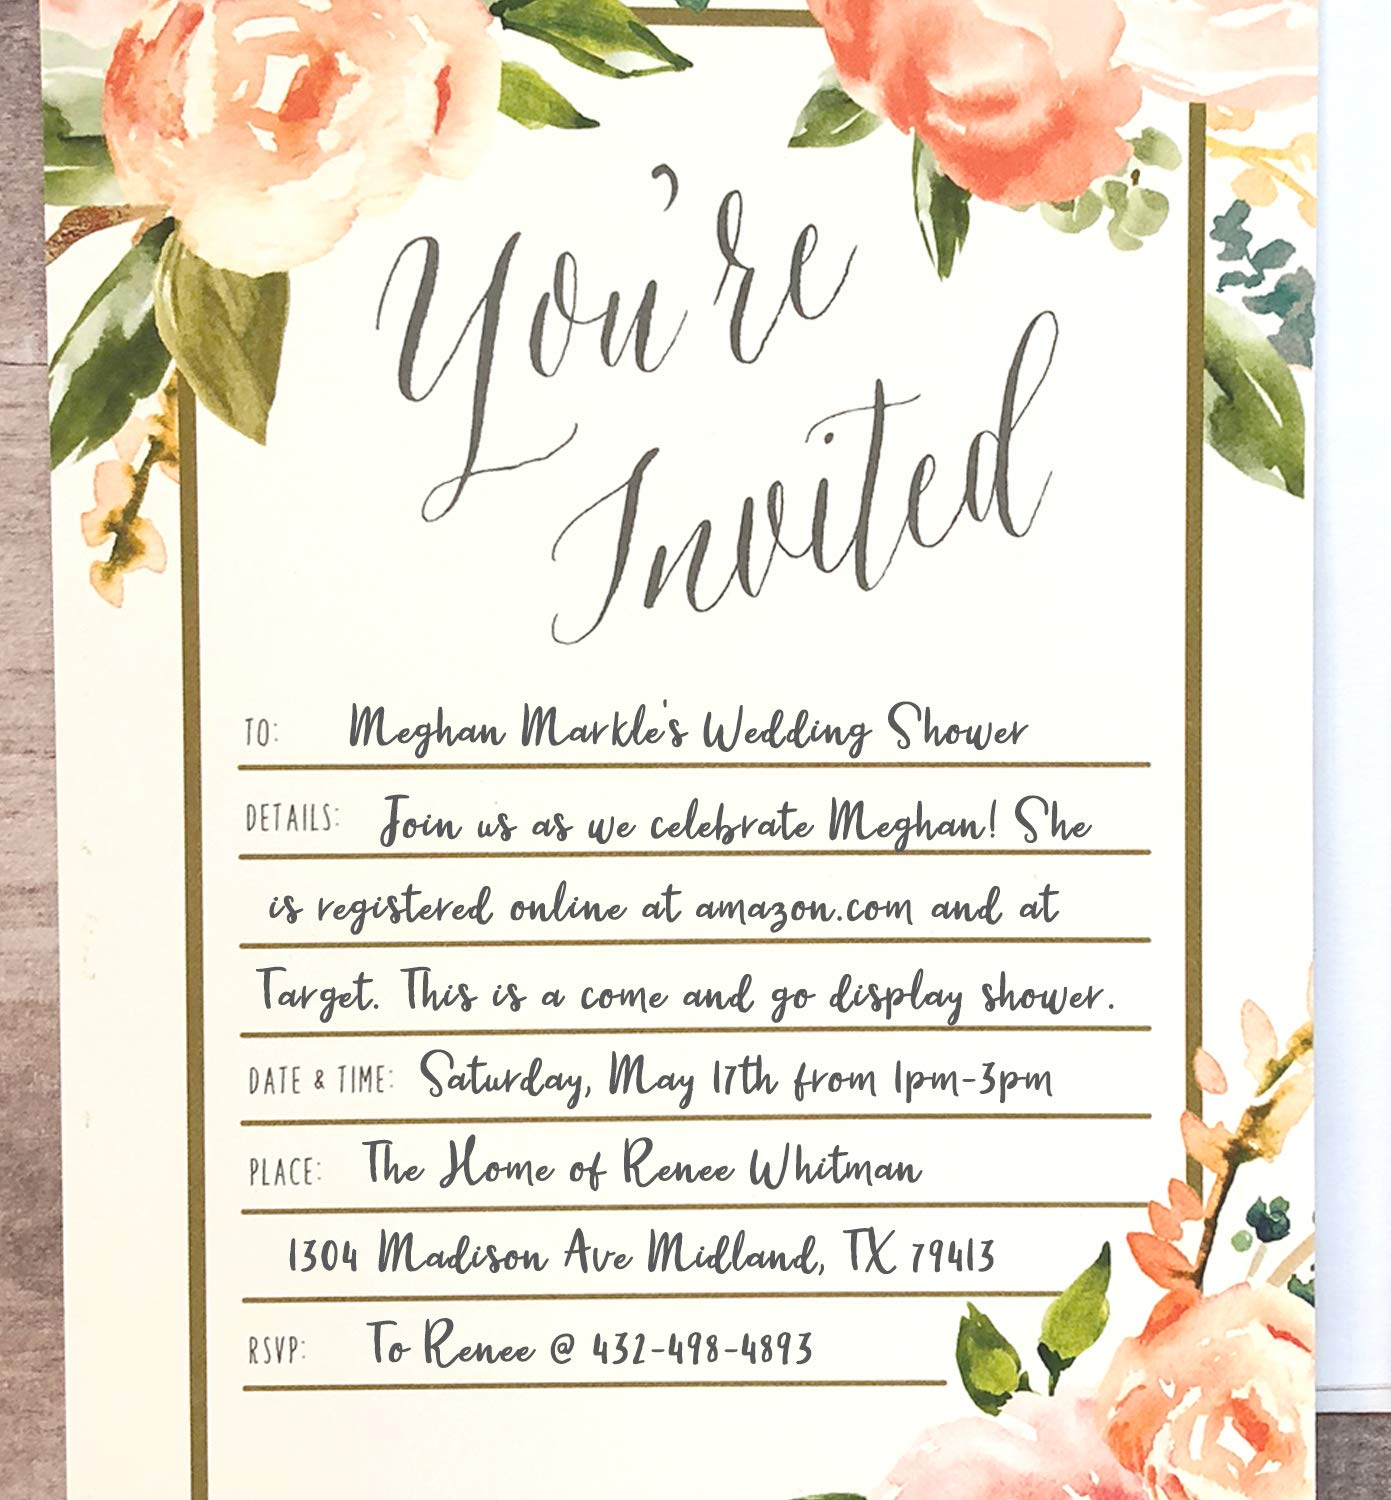 25 Floral Party Invitations with Envelopes | Blank, Fill-in Invites | Great for Bridal Showers, Girl Baby Showers, Graduation, Bachelorette, Sweet 16, Rehearsal Dinner, Birthdays, Weddings by Angie Makes (Image #6)